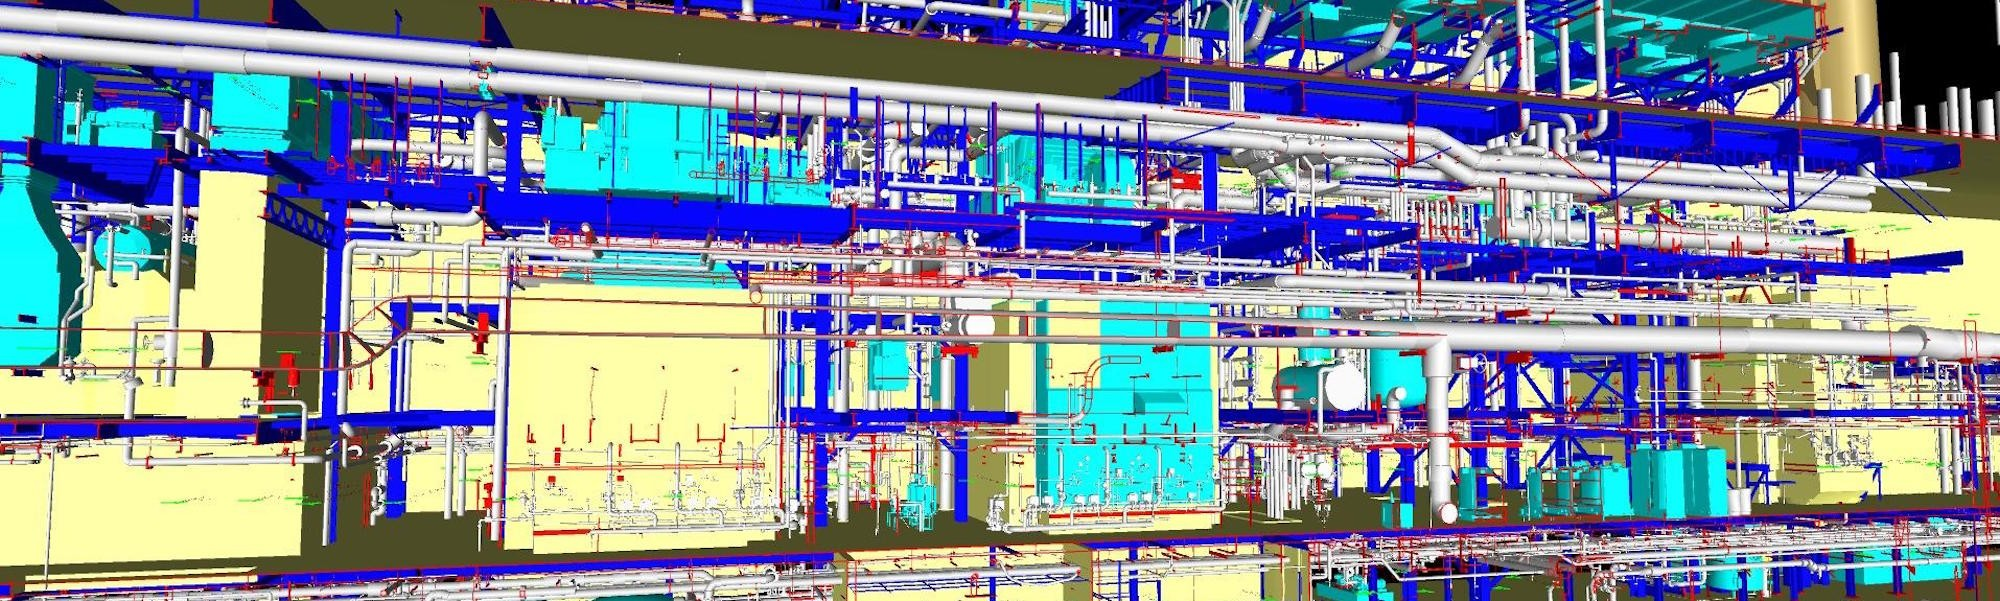 Intelligent BIM Models